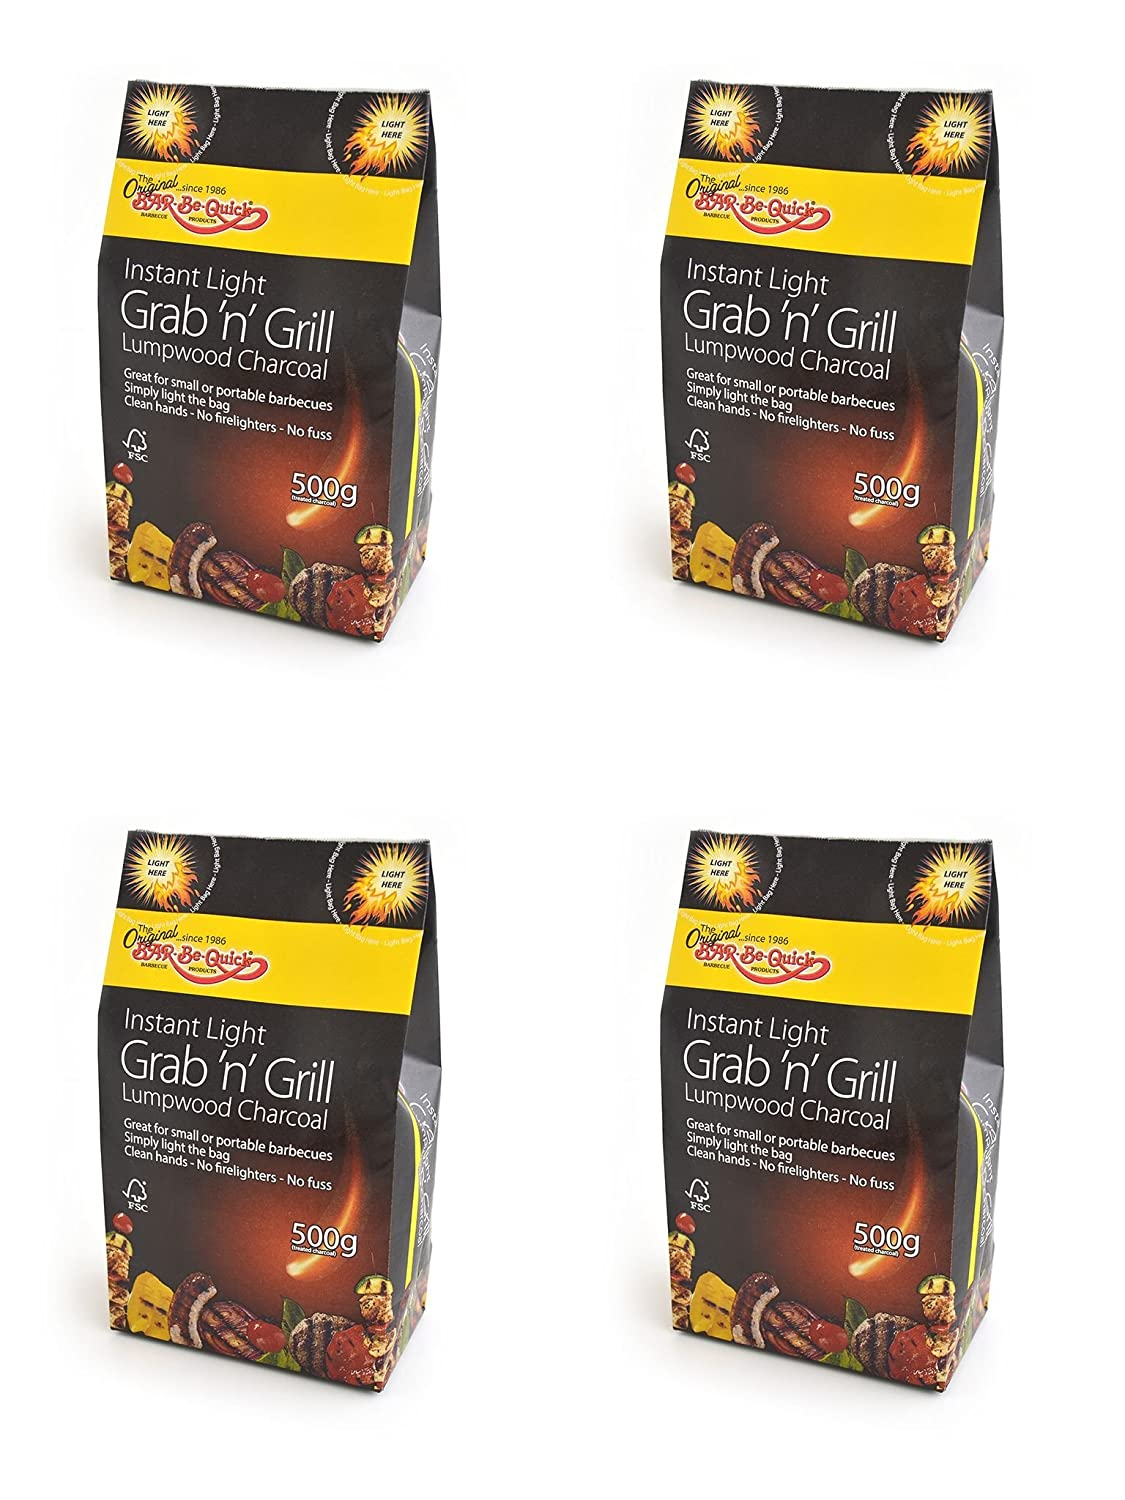 Perfect for Picnic BBQs Firepits and much more Kettle BBQs Simply light and cook! 6 X Bar-Be-Quick Instant Light Grab /& Grill Bags- Lumpwood Charcoal- 500g each bag